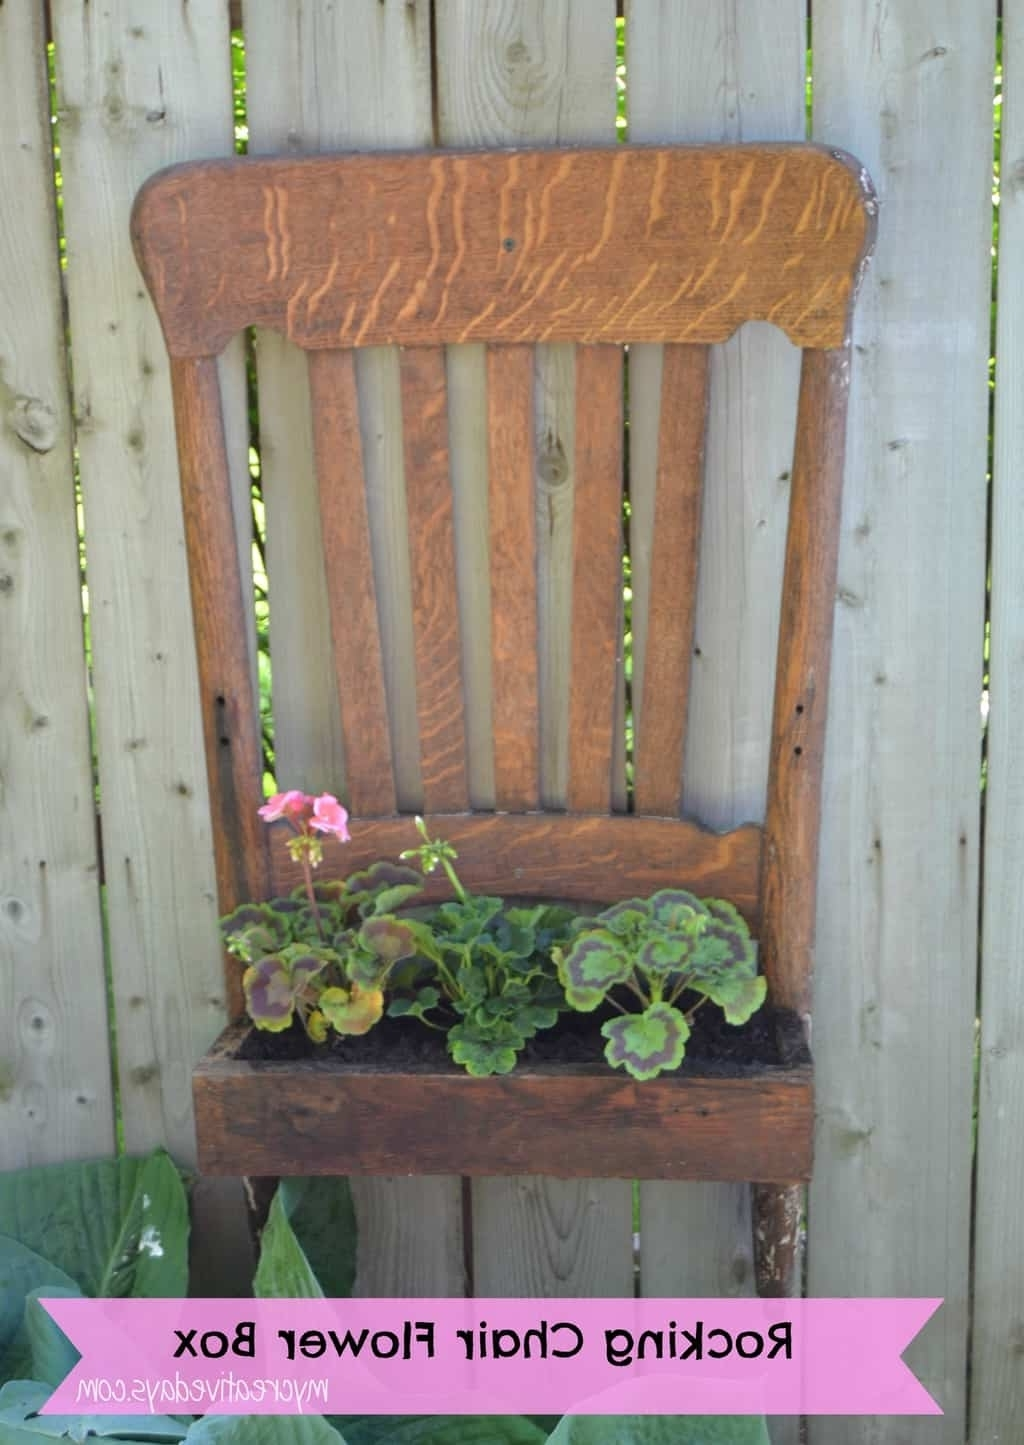 Diy Rocking Chair Upcycle Tutorial – My Creative Days In Most Recent Upcycled Rocking Chairs (View 10 of 15)